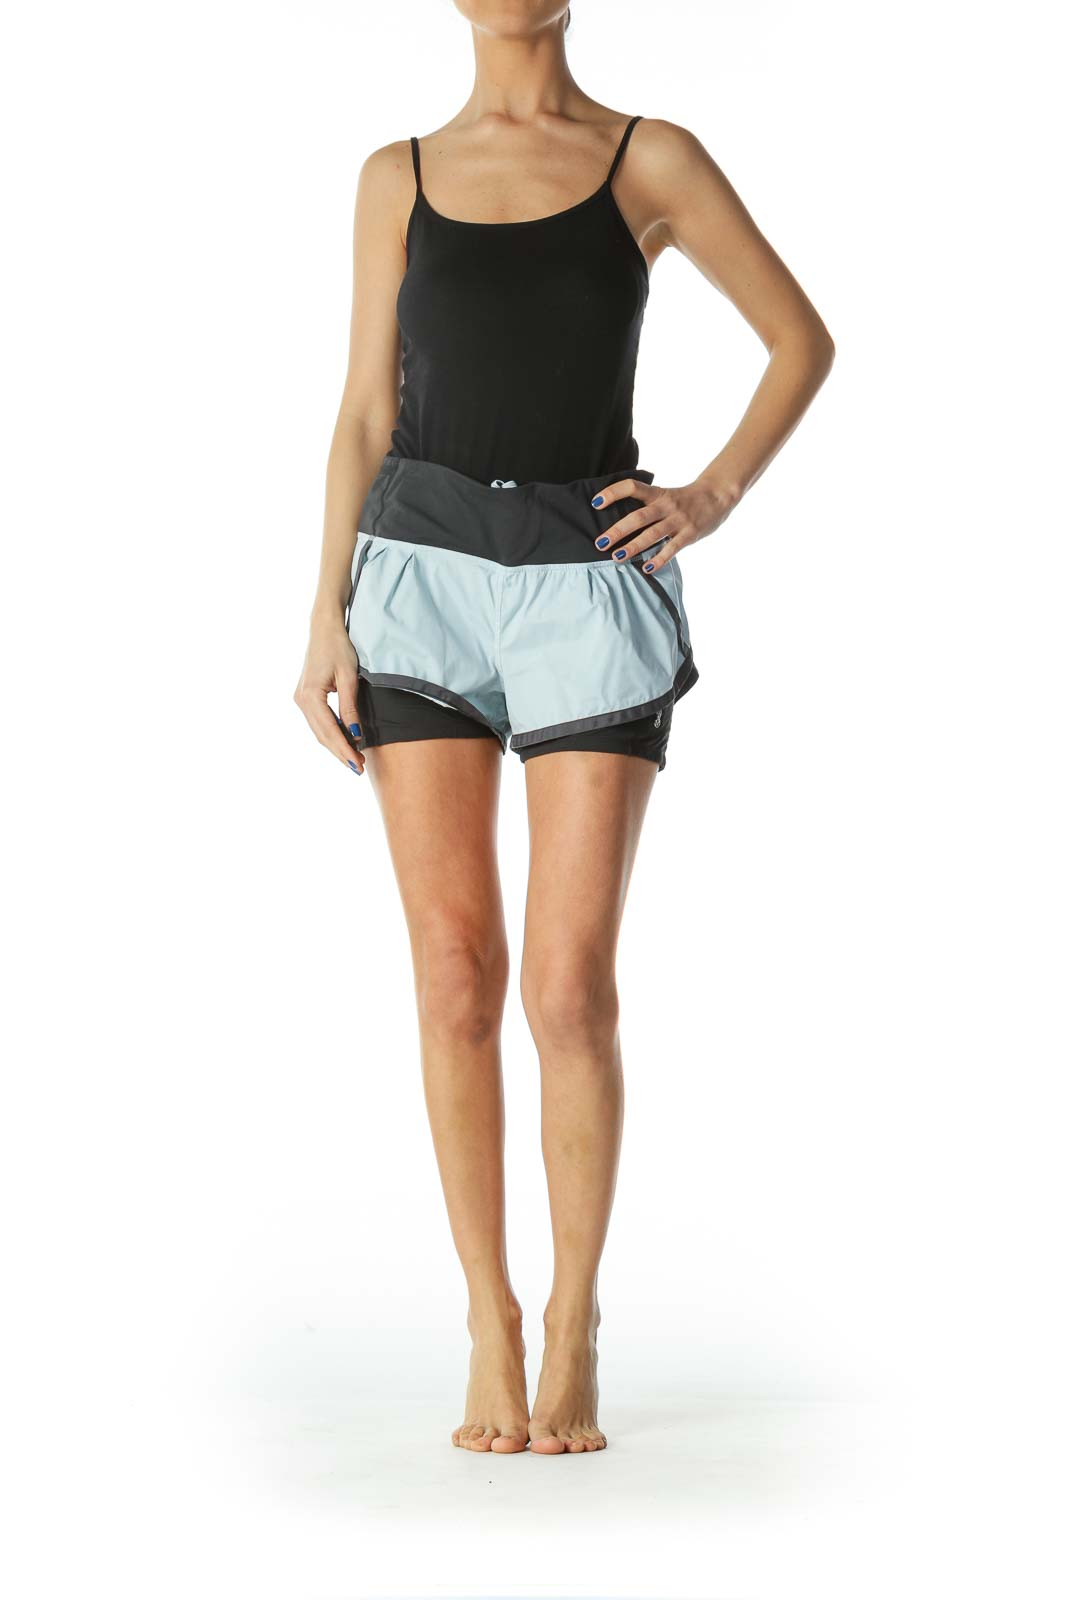 Blue and Black Stretch Sports Shorts